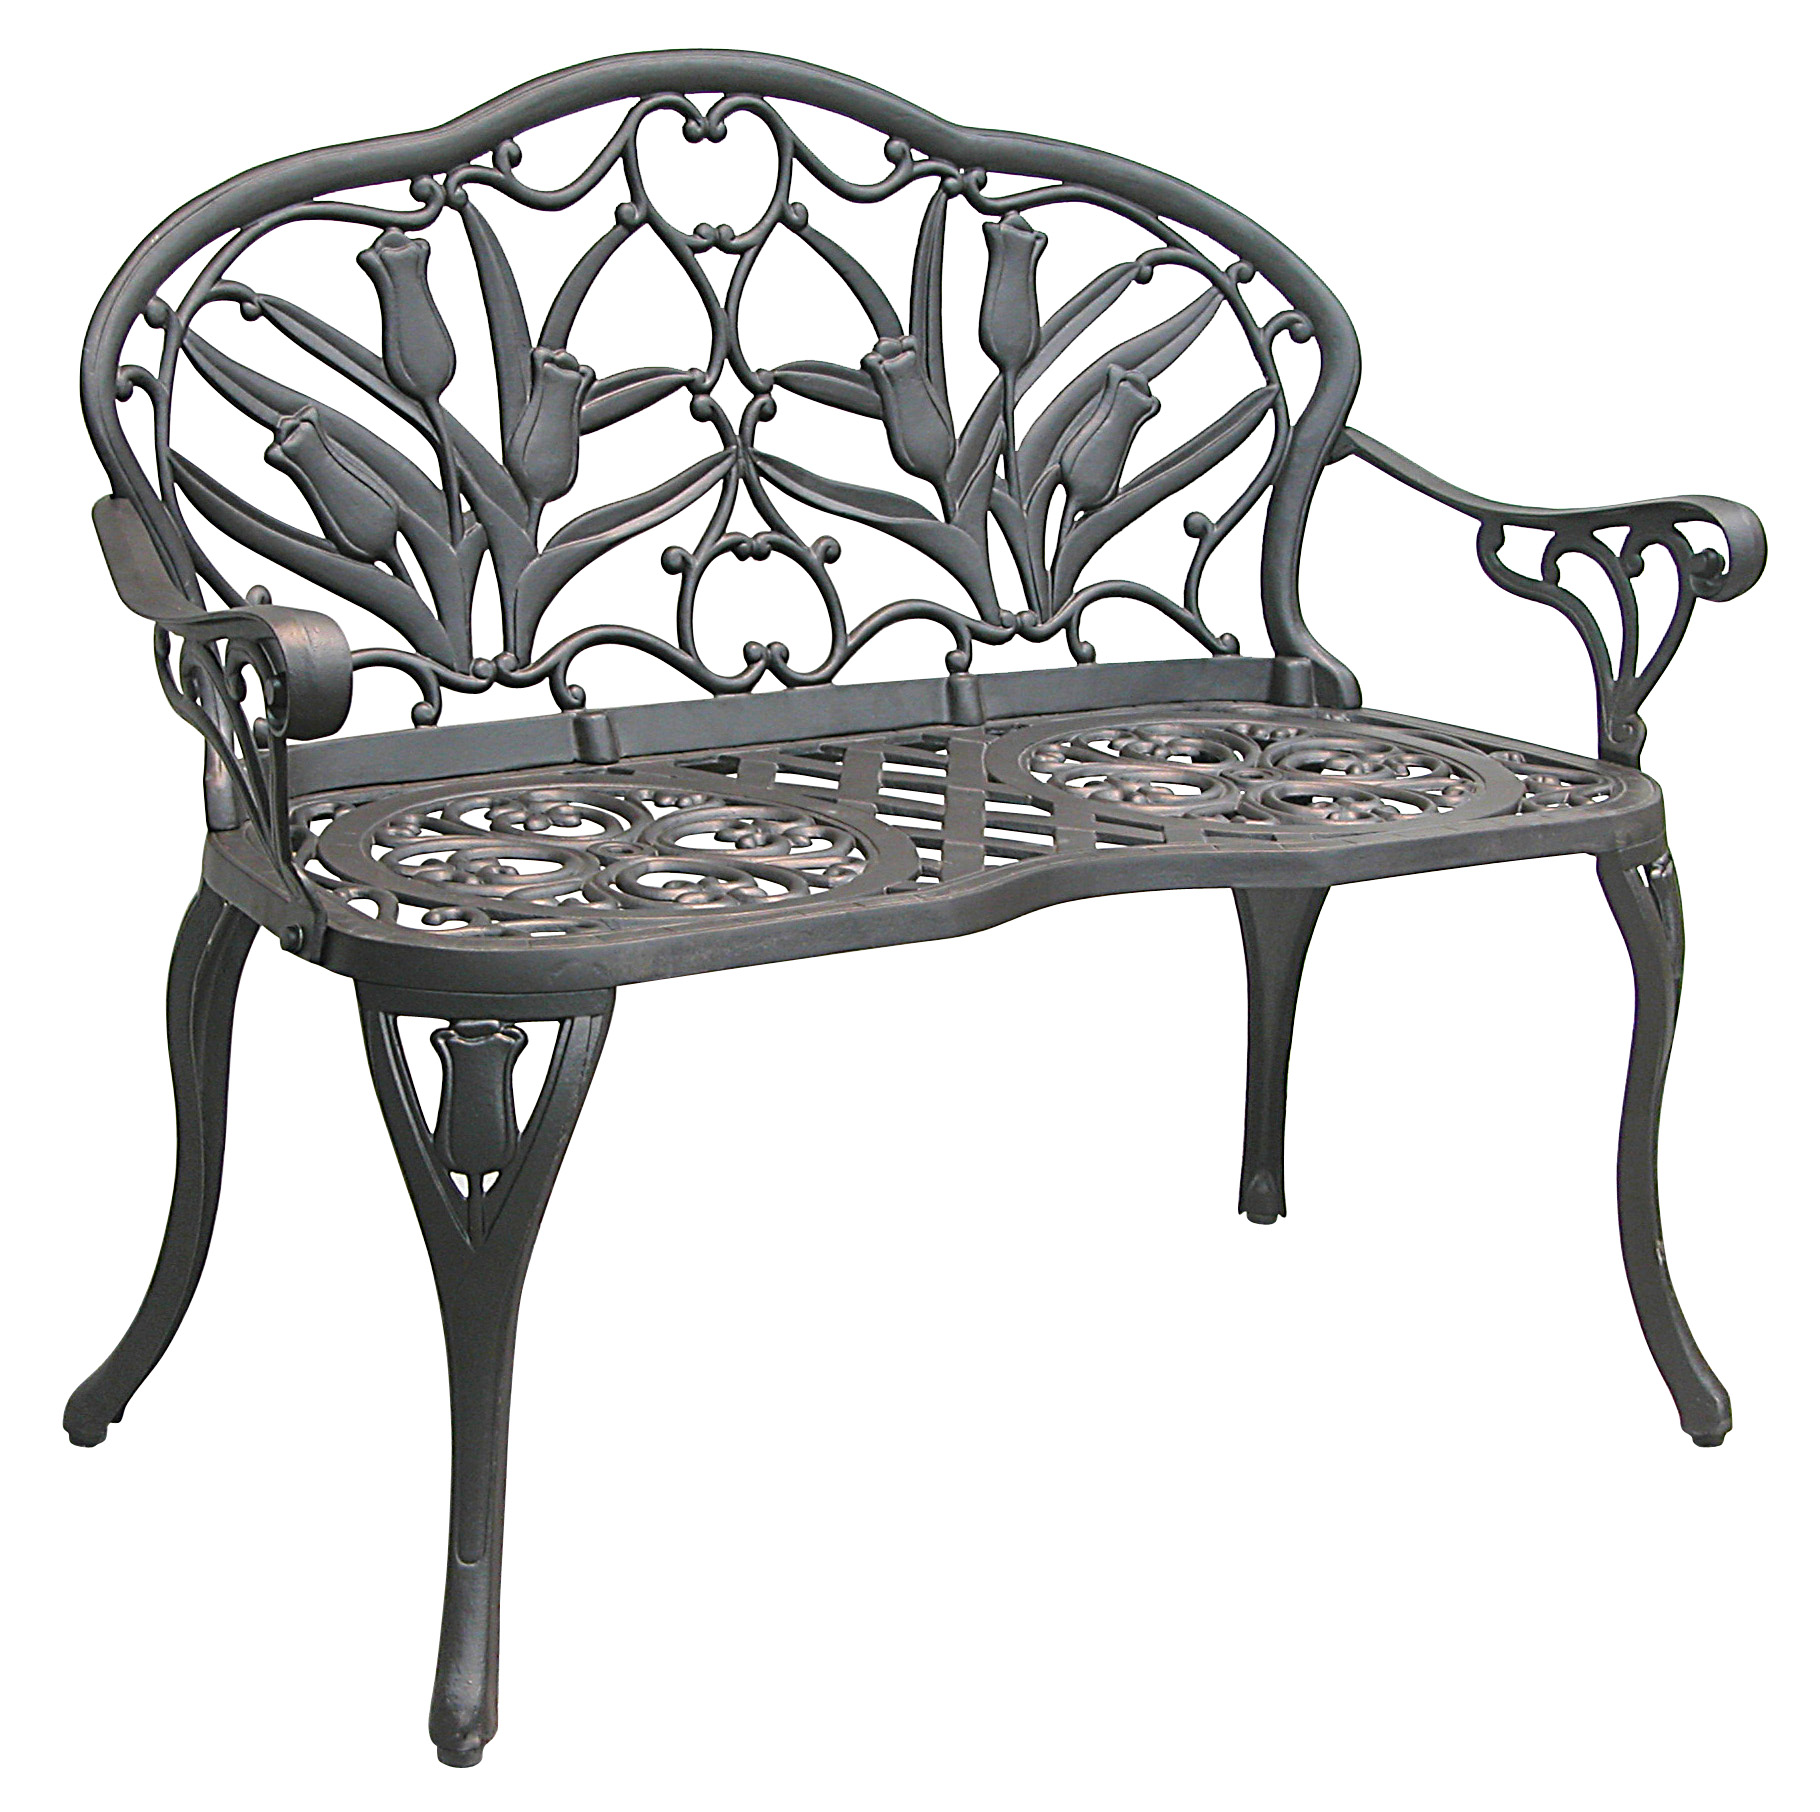 Patio Furniture Bench Cast Aluminum Iron Loveseat Tulip